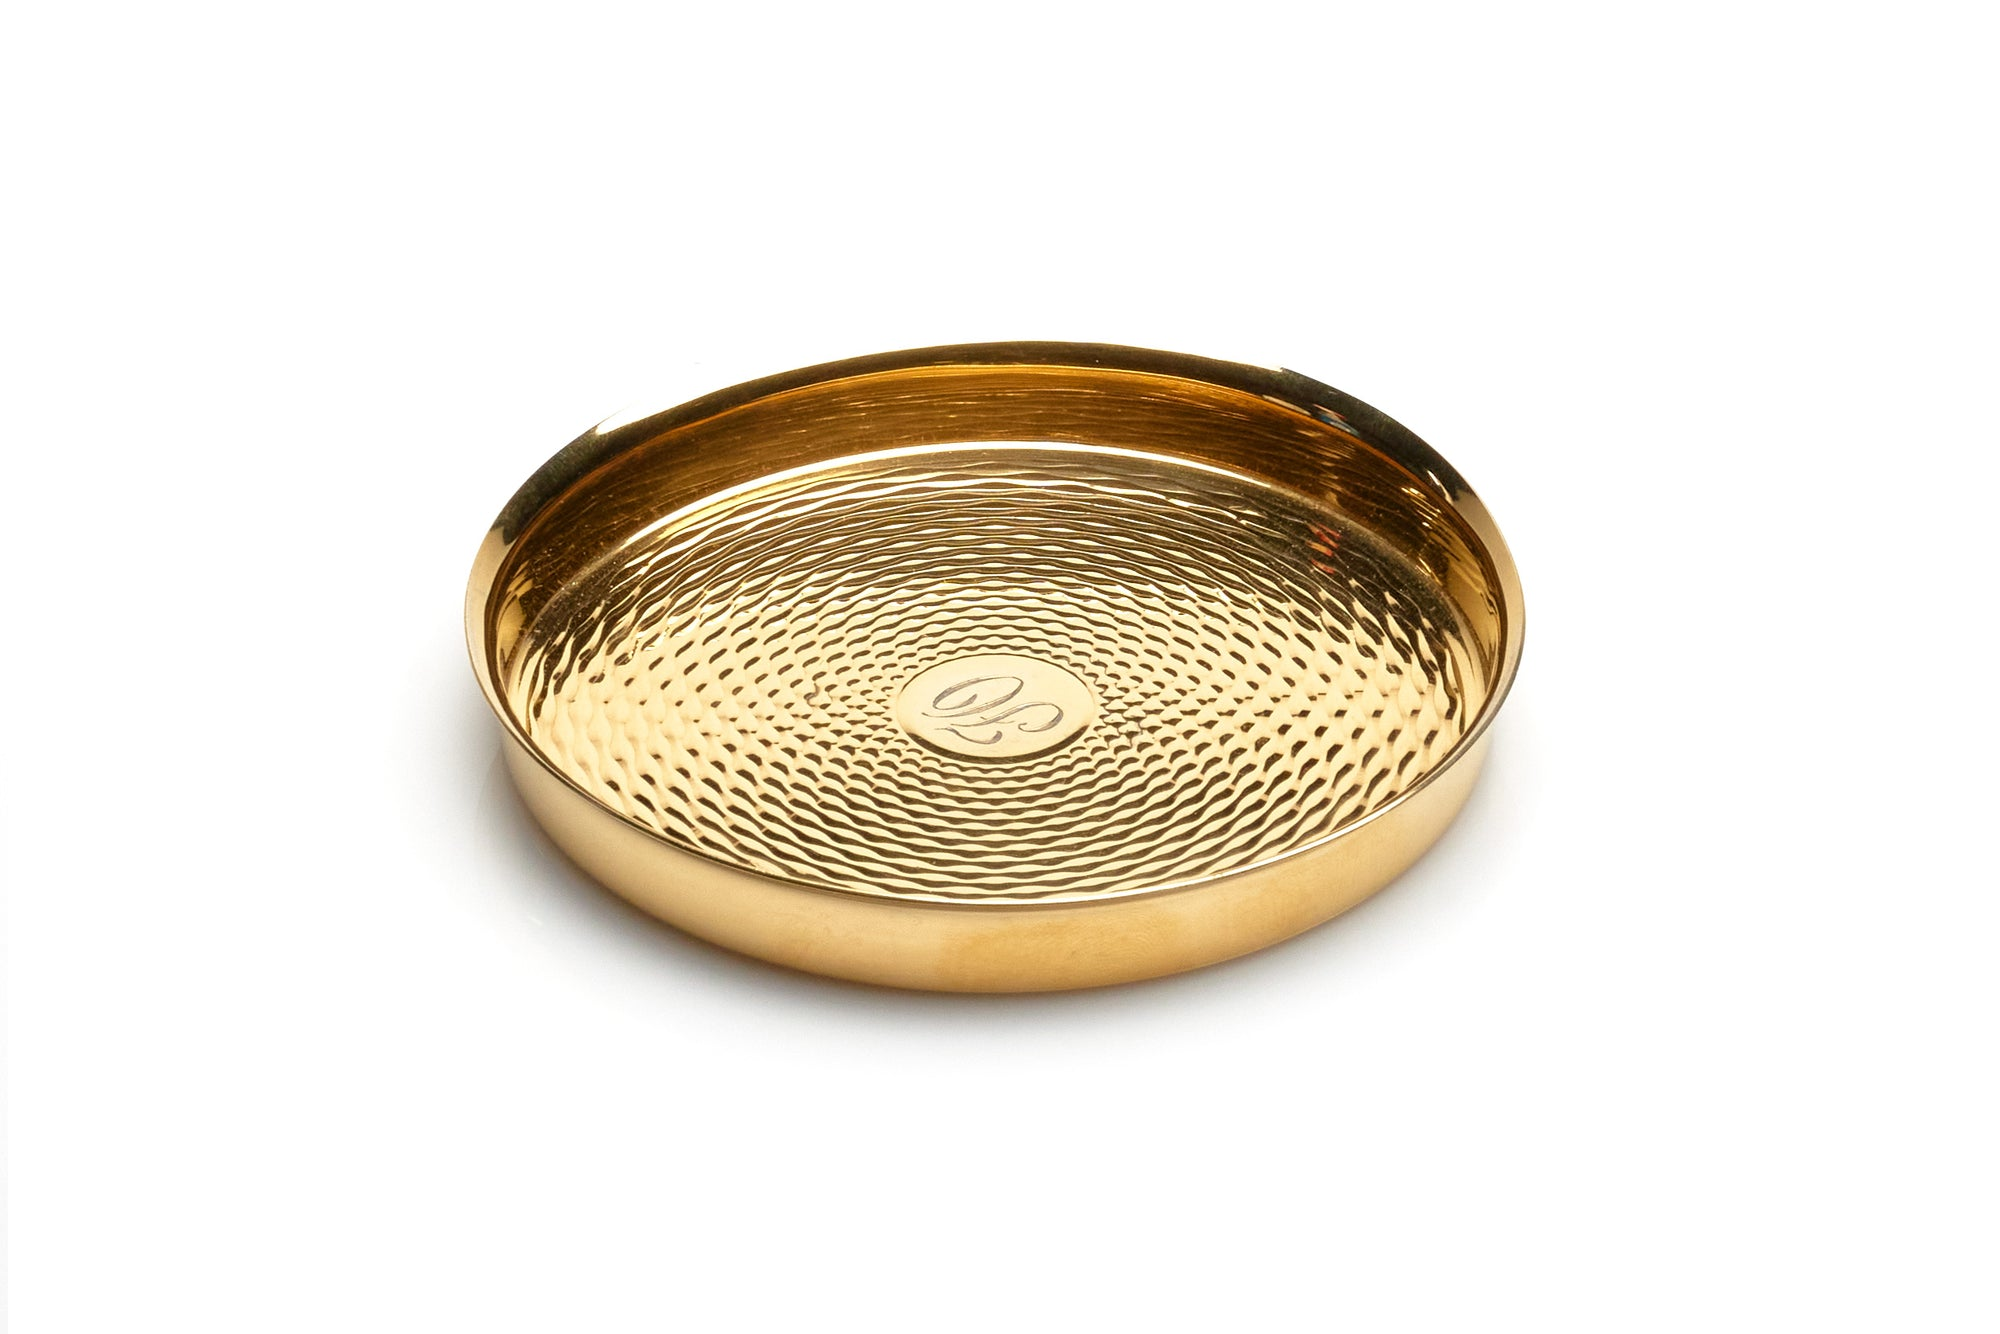 Hermes Vermeil Bottle Coaster